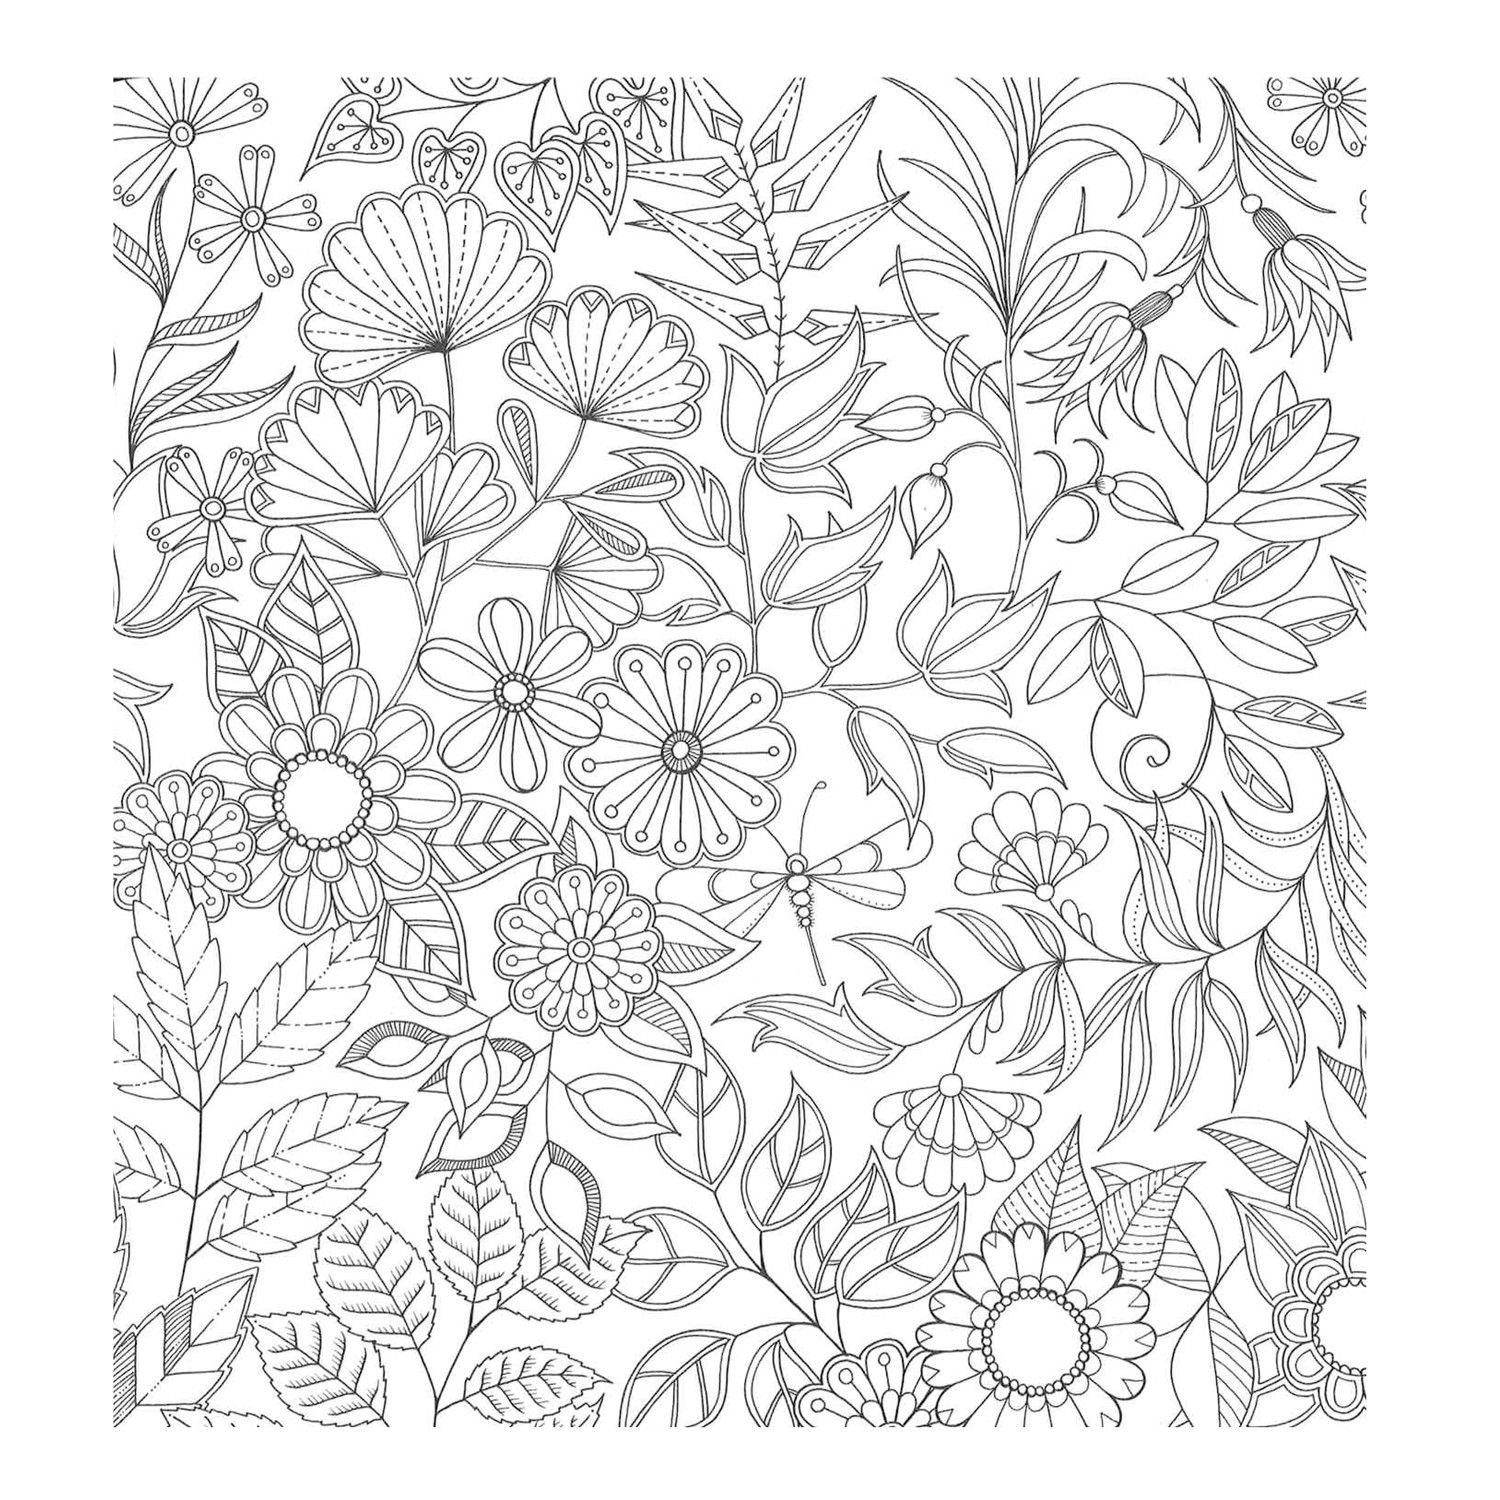 Enchanted Forest Drawing at GetDrawings.com | Free for ...